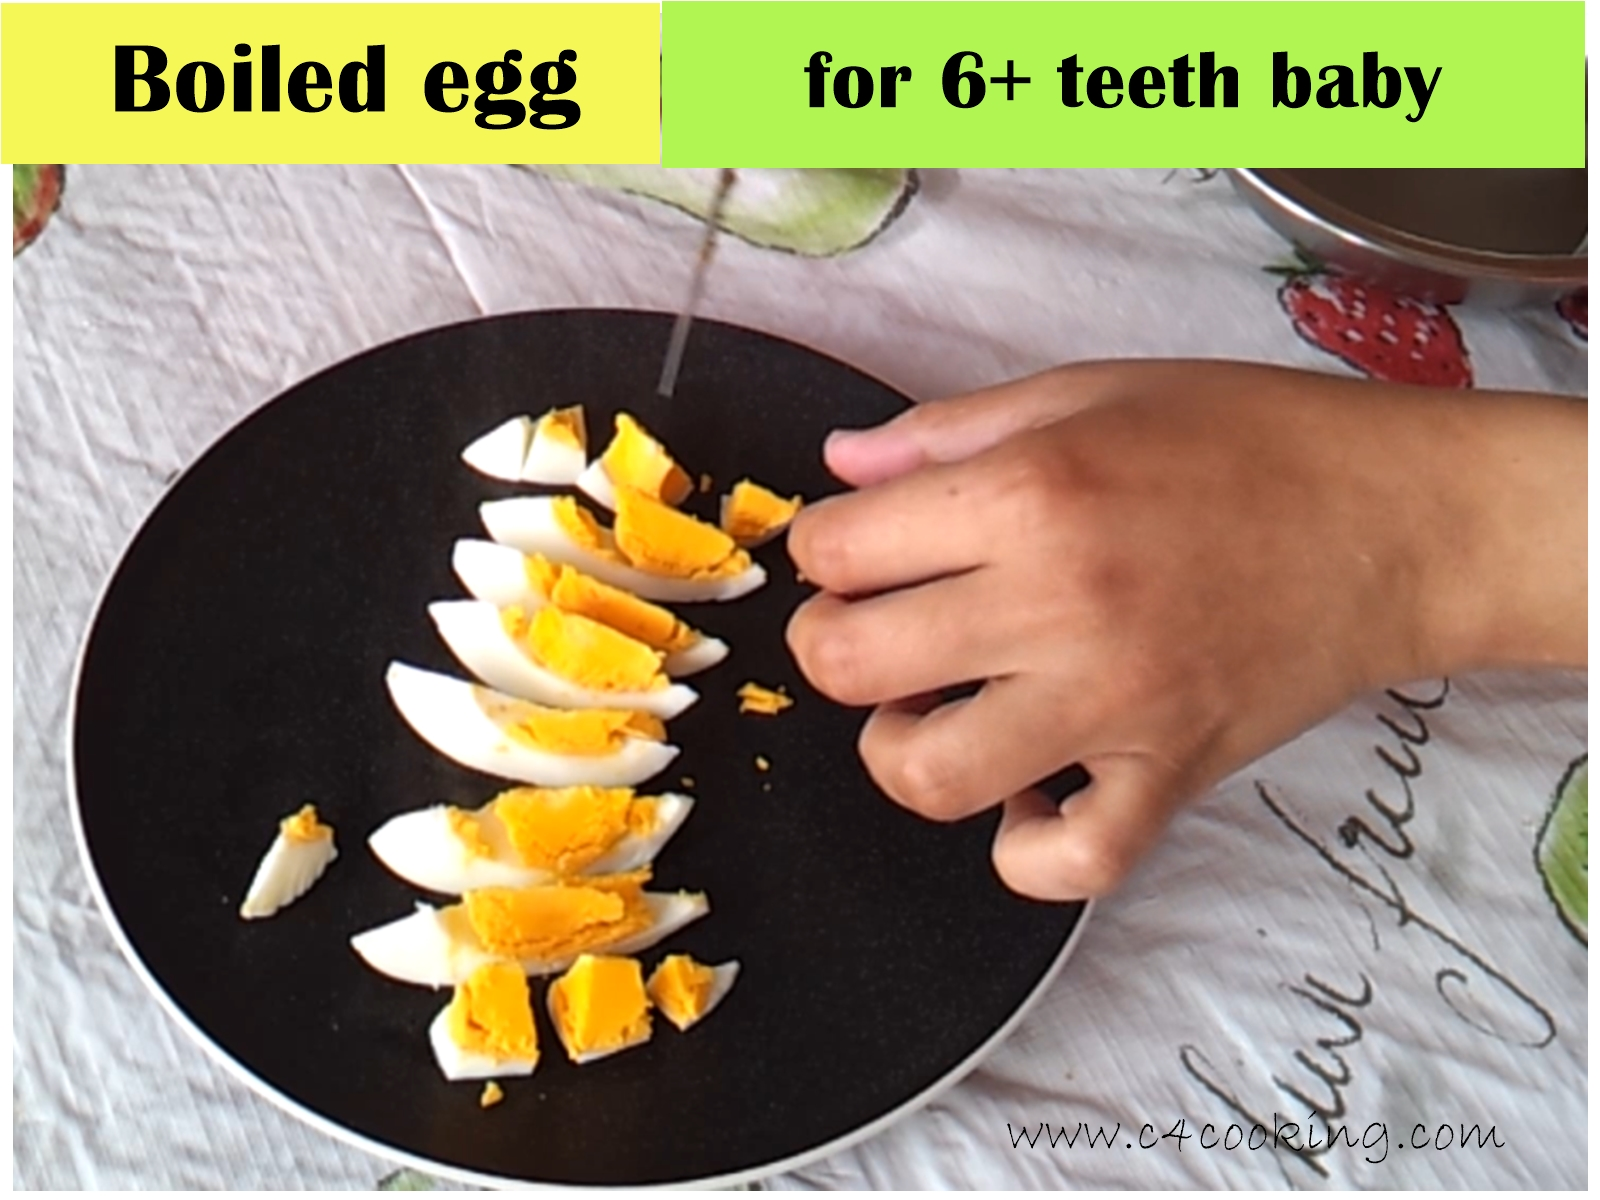 boiled egg recipe for 12+ months baby, how to give eggs to baby, egg recipes for toddlers